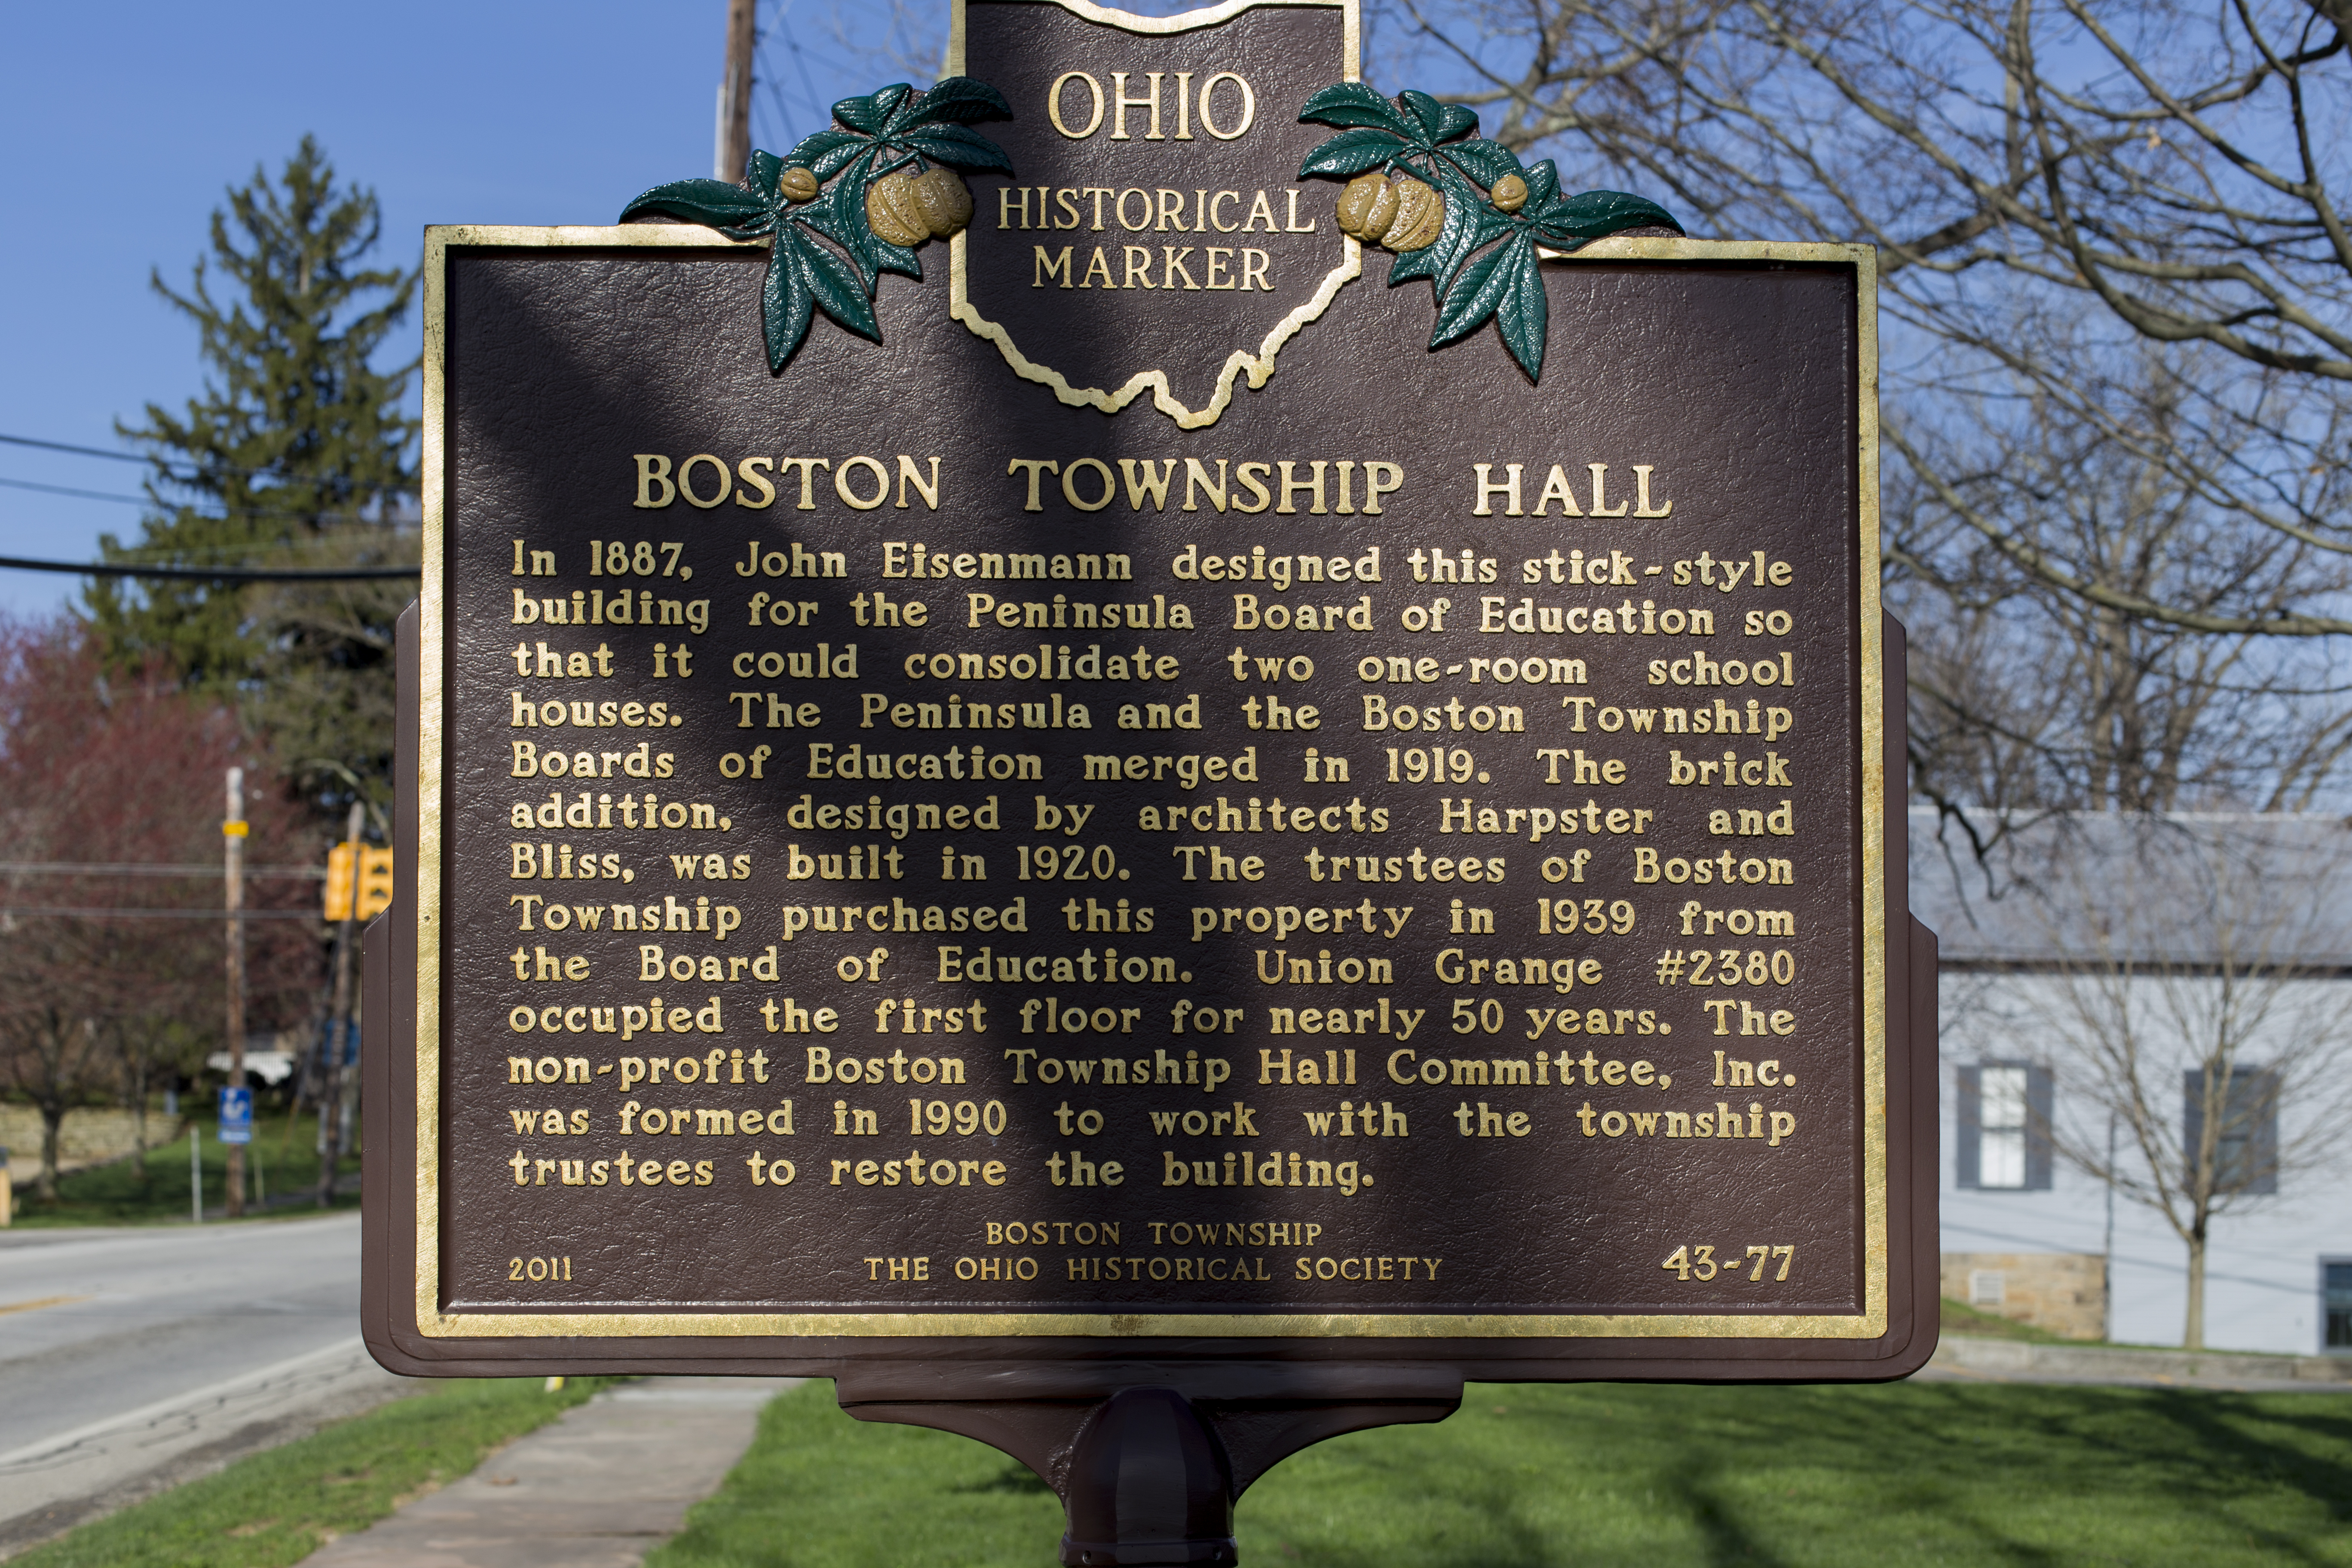 A historic plaque commemorating the Boston Township Hall and its designer.